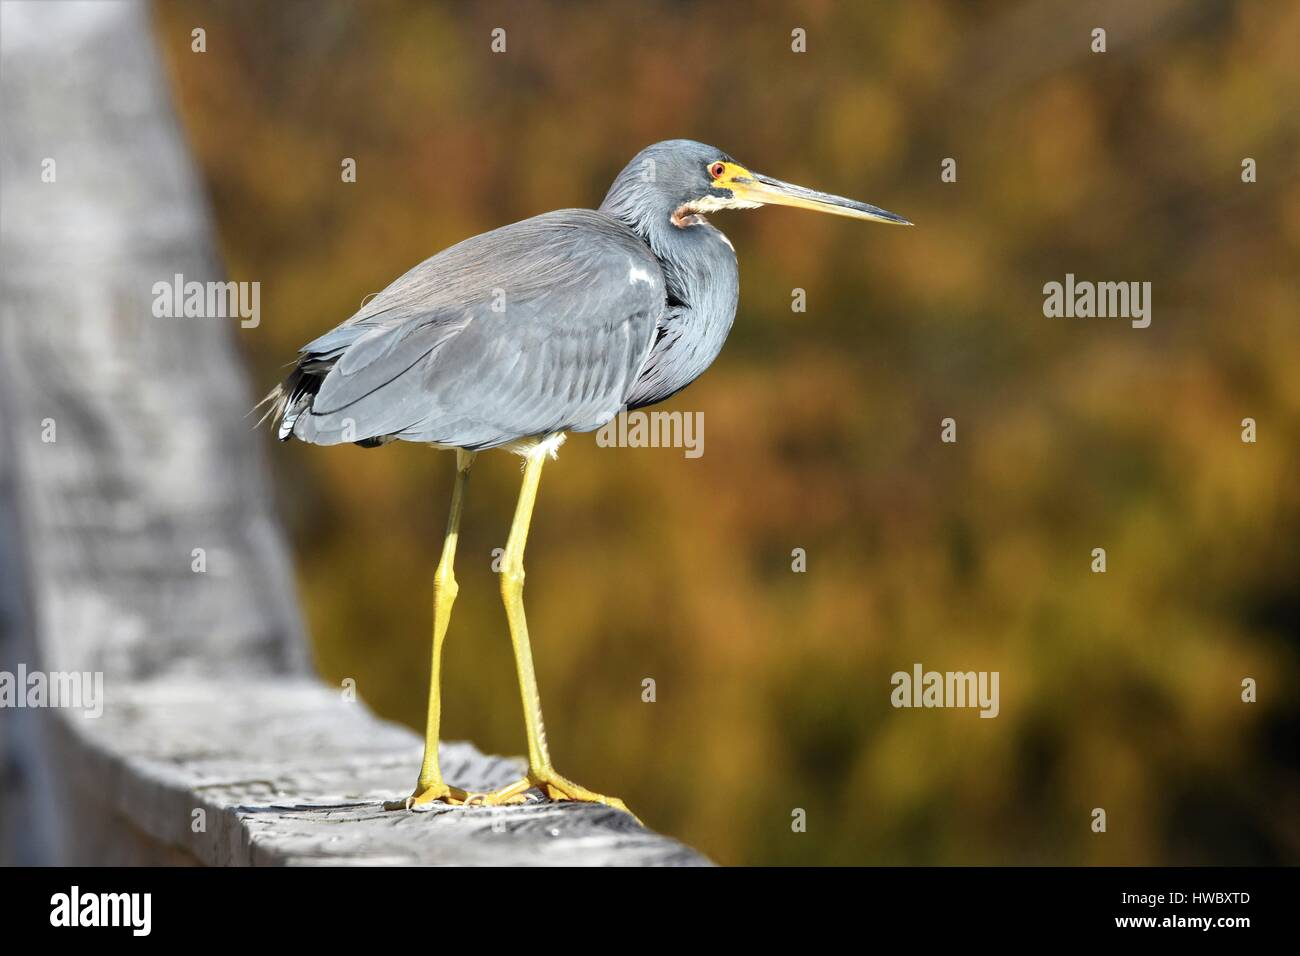 Herons at Green Cay nature center - Stock Image